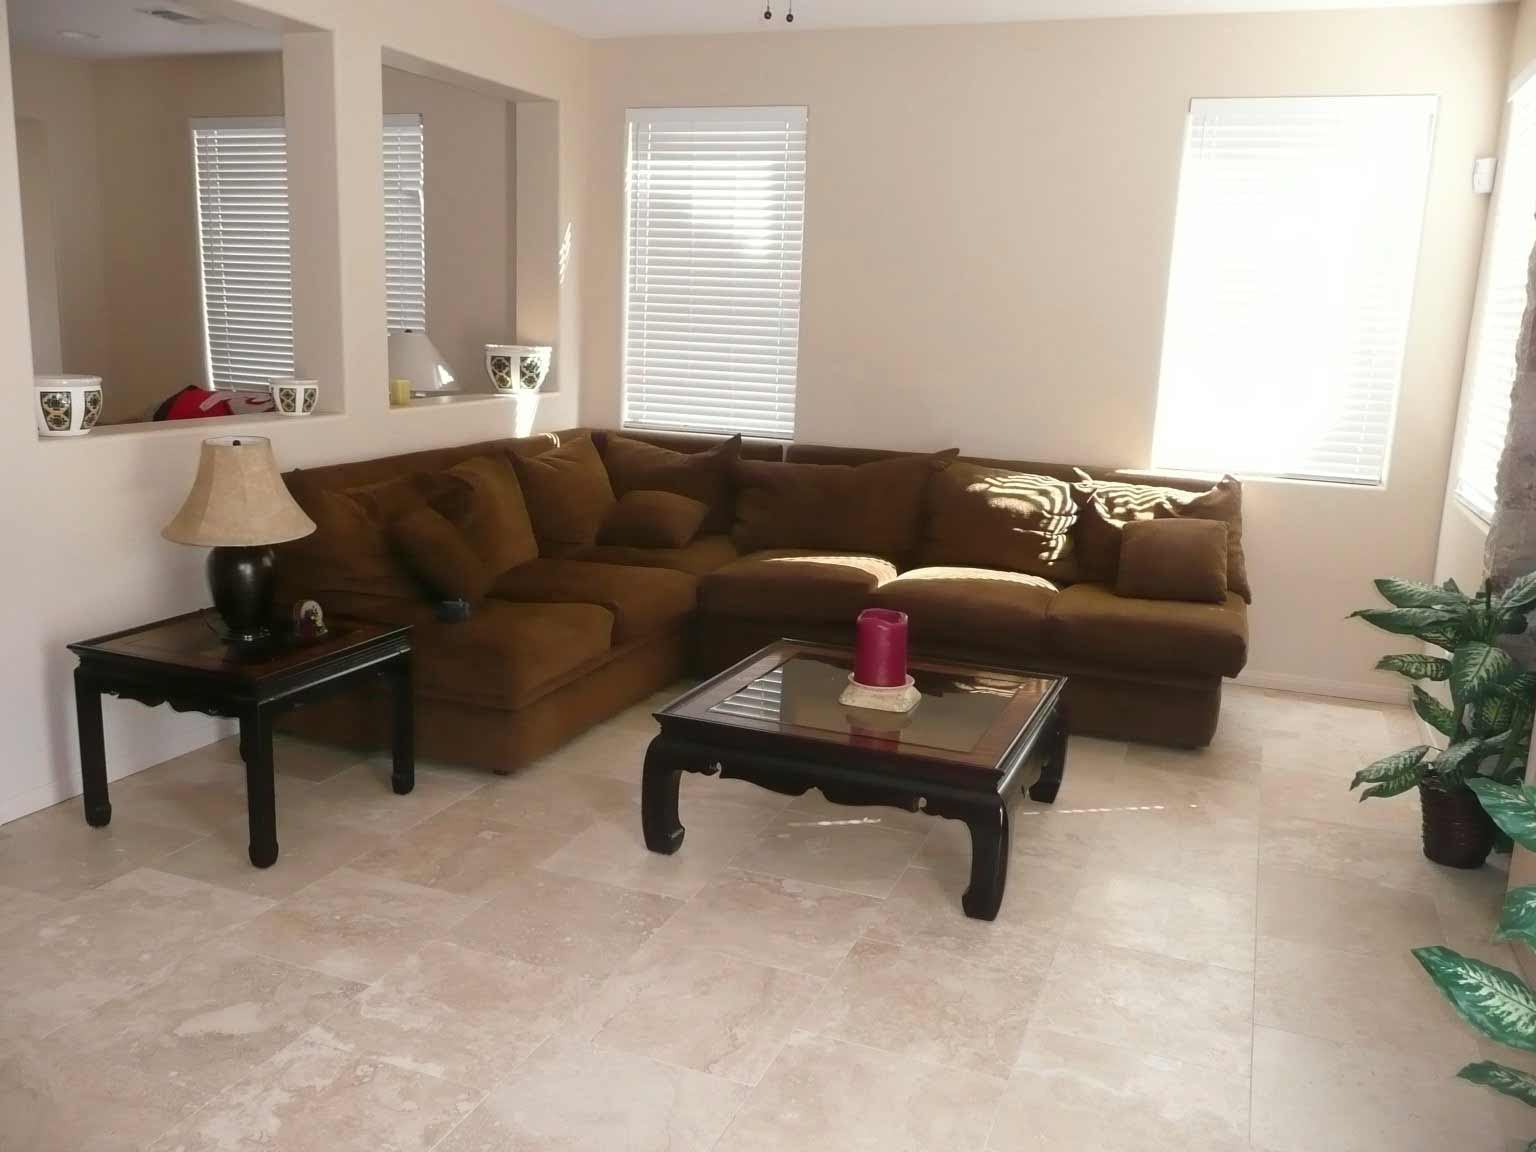 Best Cheap Living Room Furniture Sets Gallery Interior Design Intended For Living Room Sets My Home Inspiration